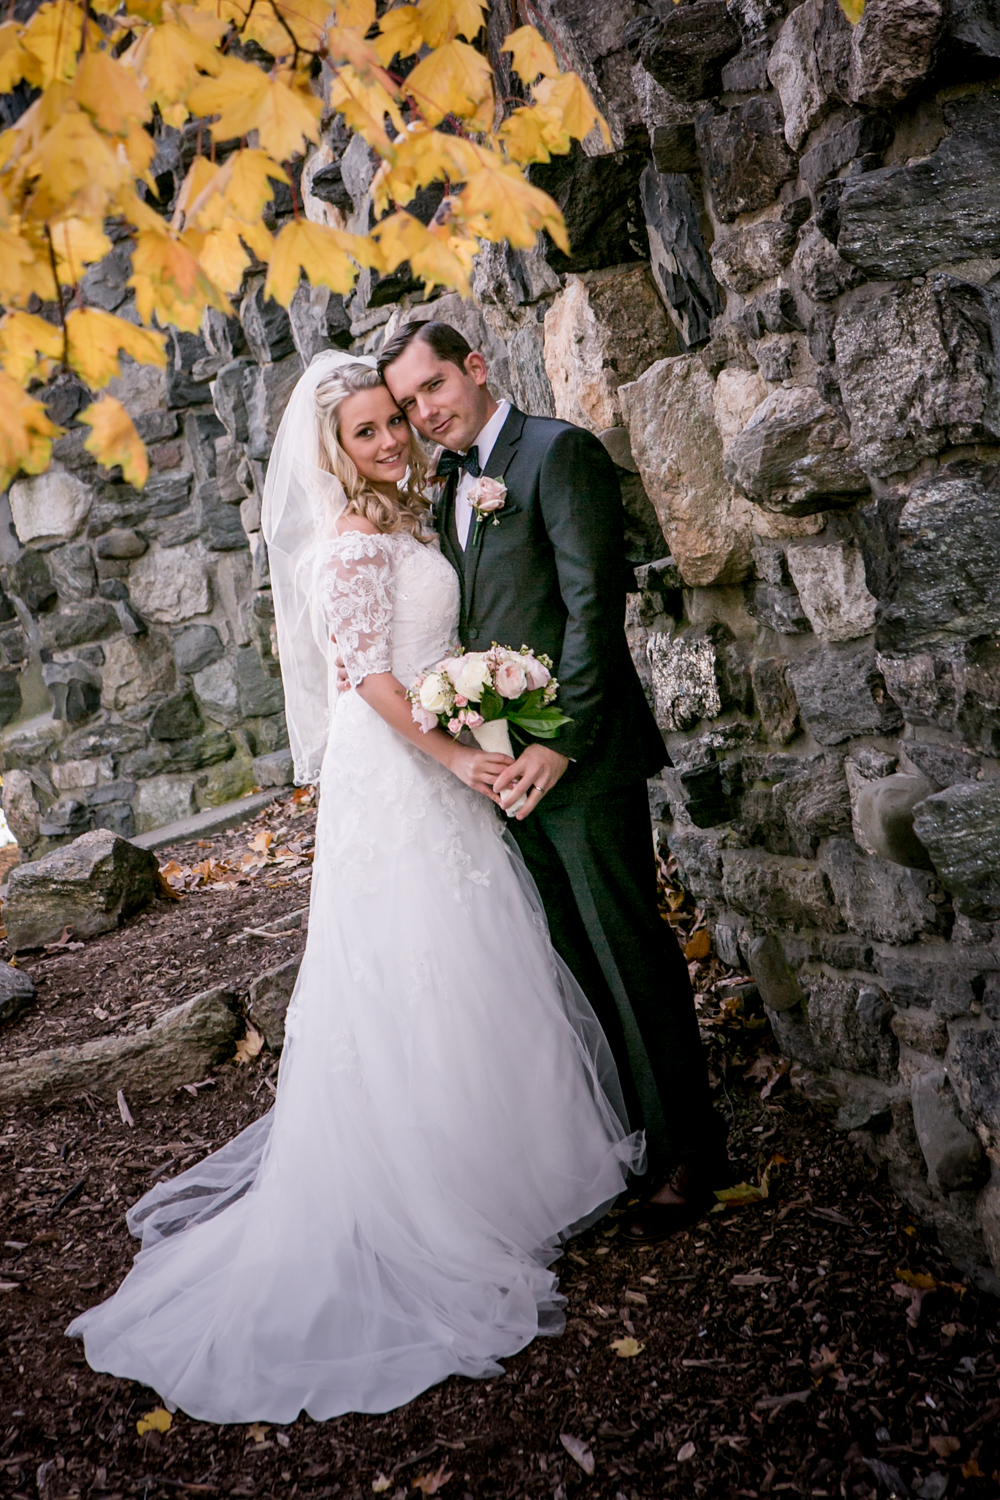 wedding-photography-in-new-york-glen-island-park.jpg